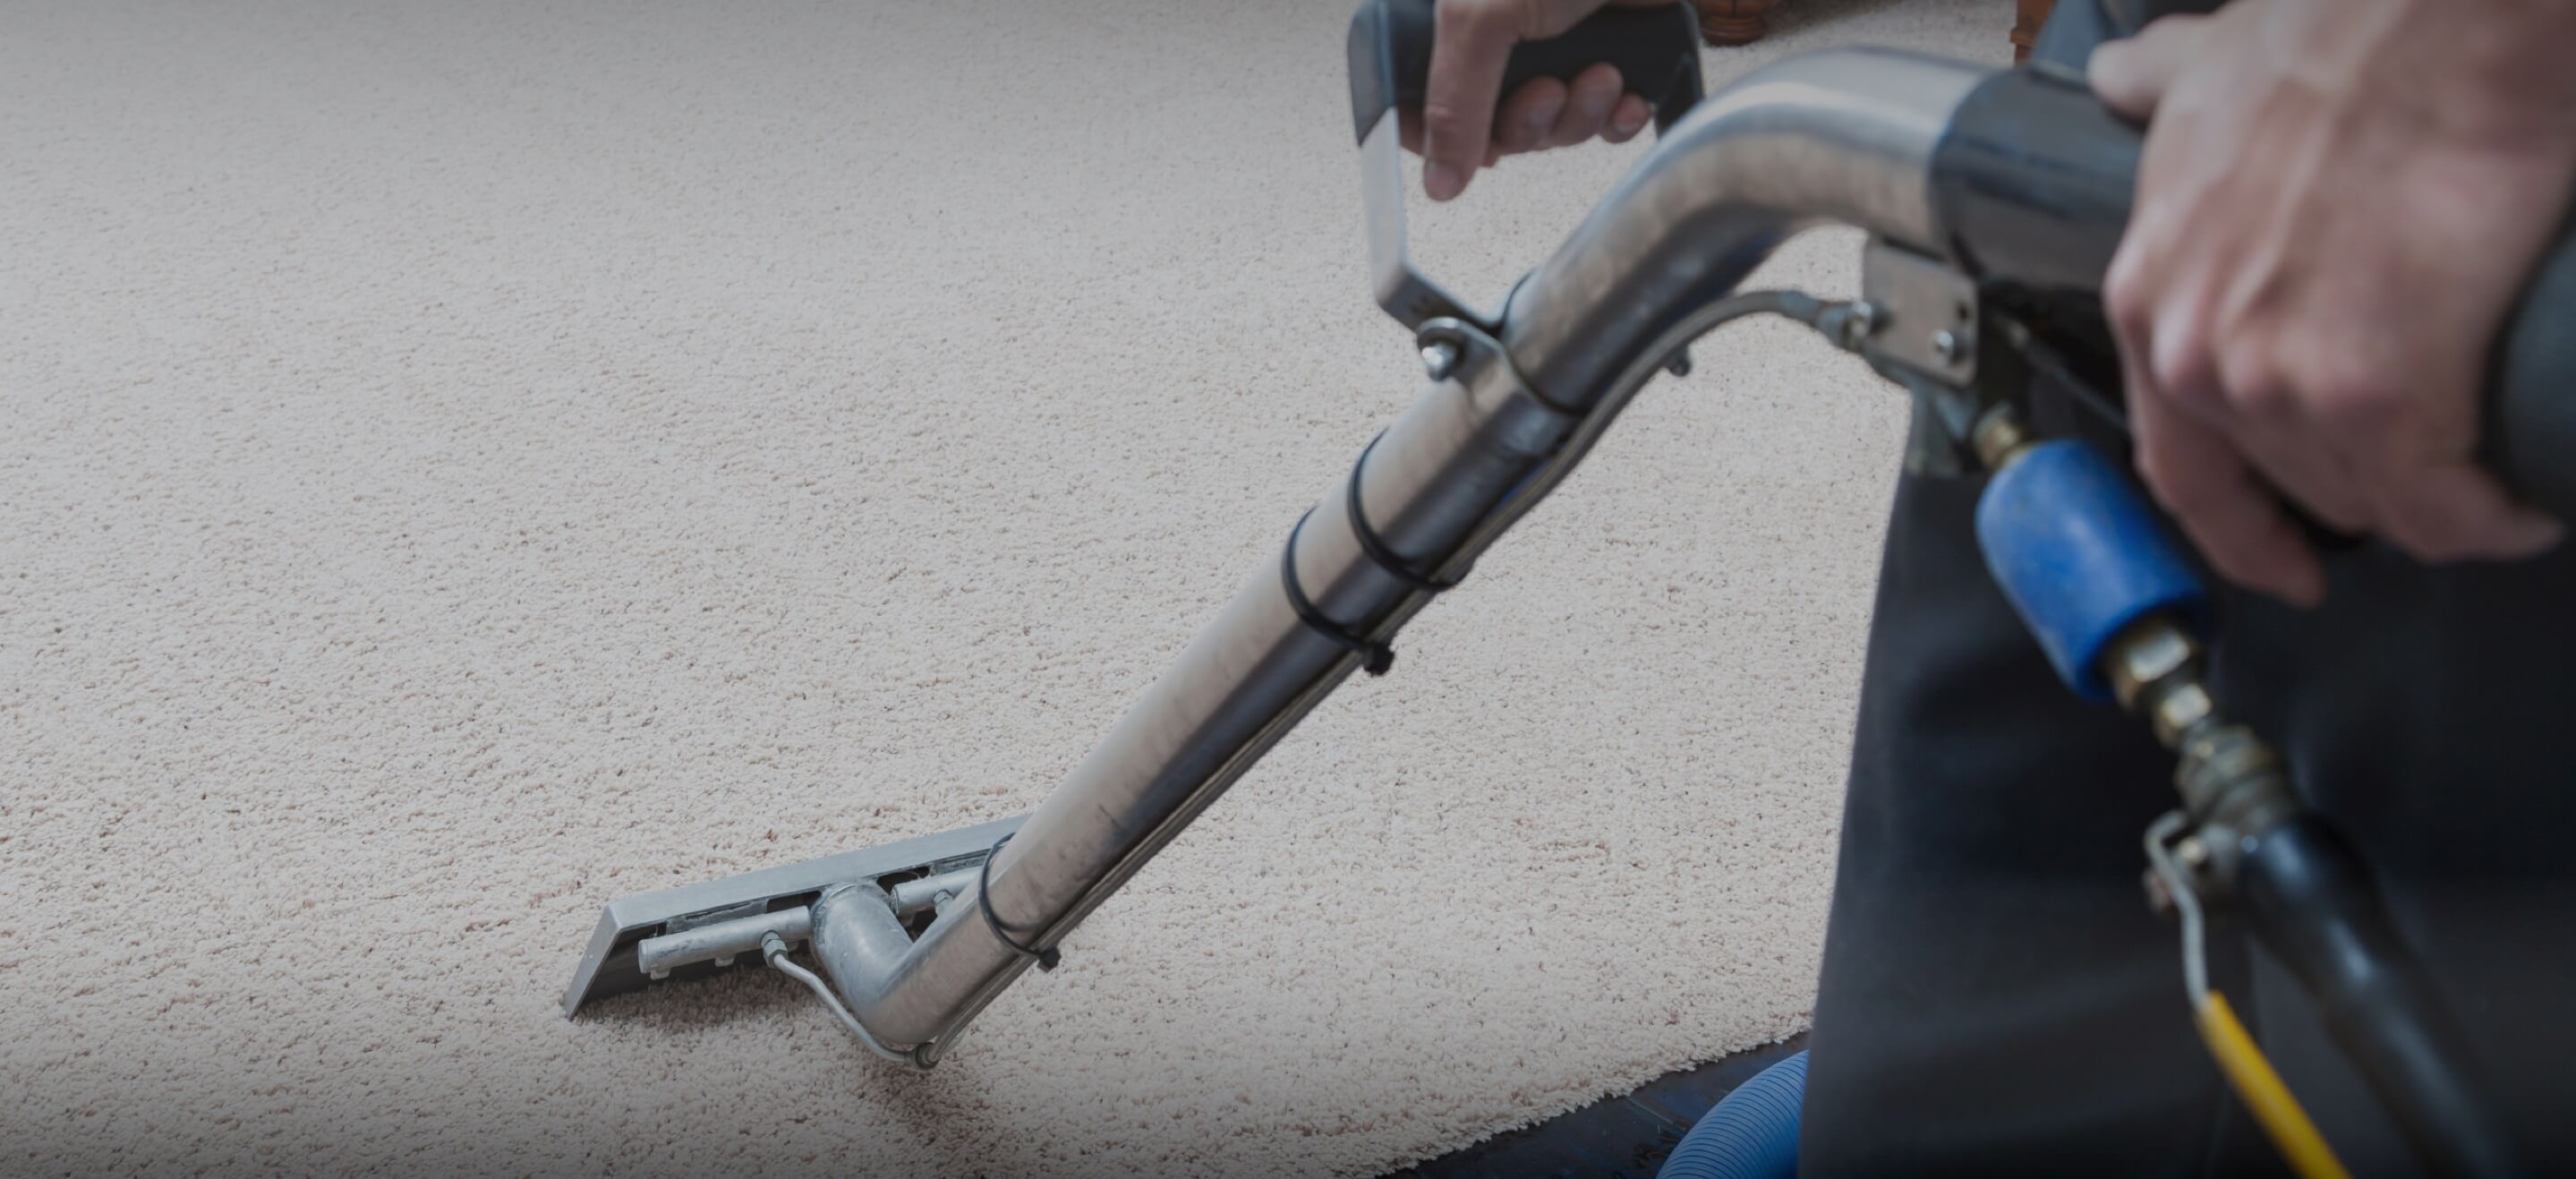 carpet cleaning services in winter garden 34787 quality local